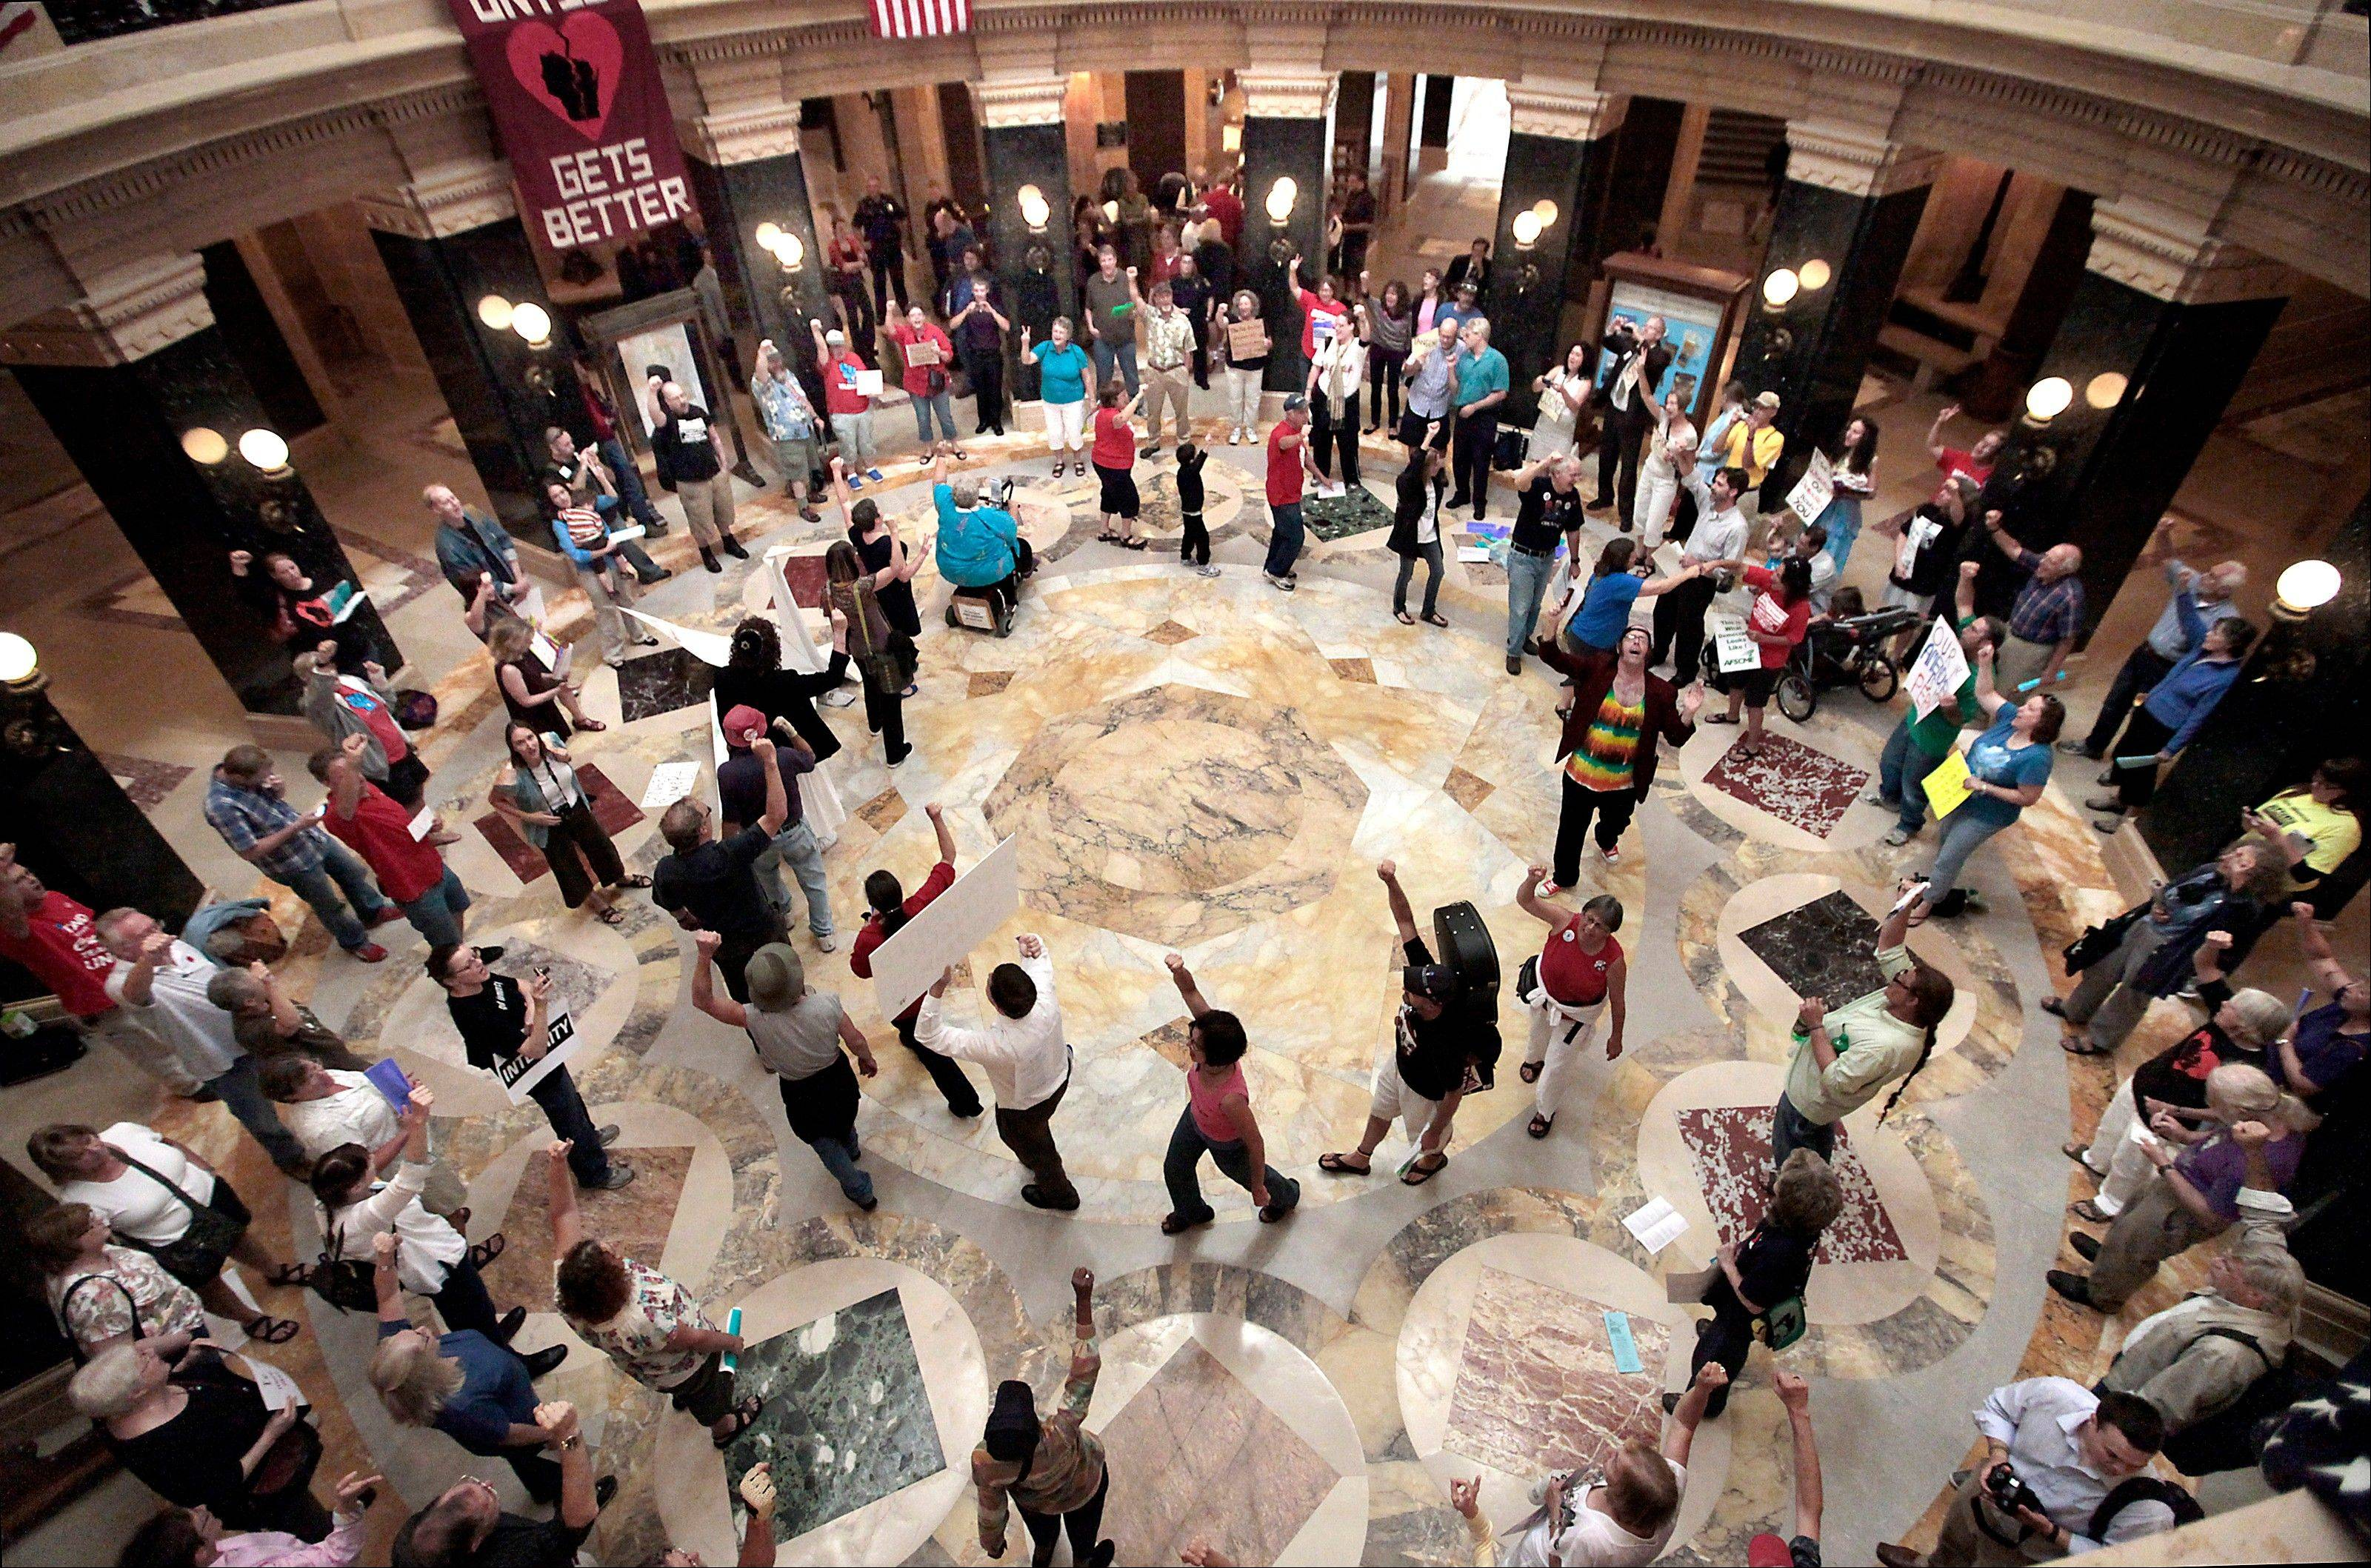 Associated Press/Sept. 7Dozens of singers gather in the state Capitol rotunda for the 455th consecutive Solidarity sing along in the wake of a crackdown on protests without a permit by new Capitol Police Chief David Erwin.